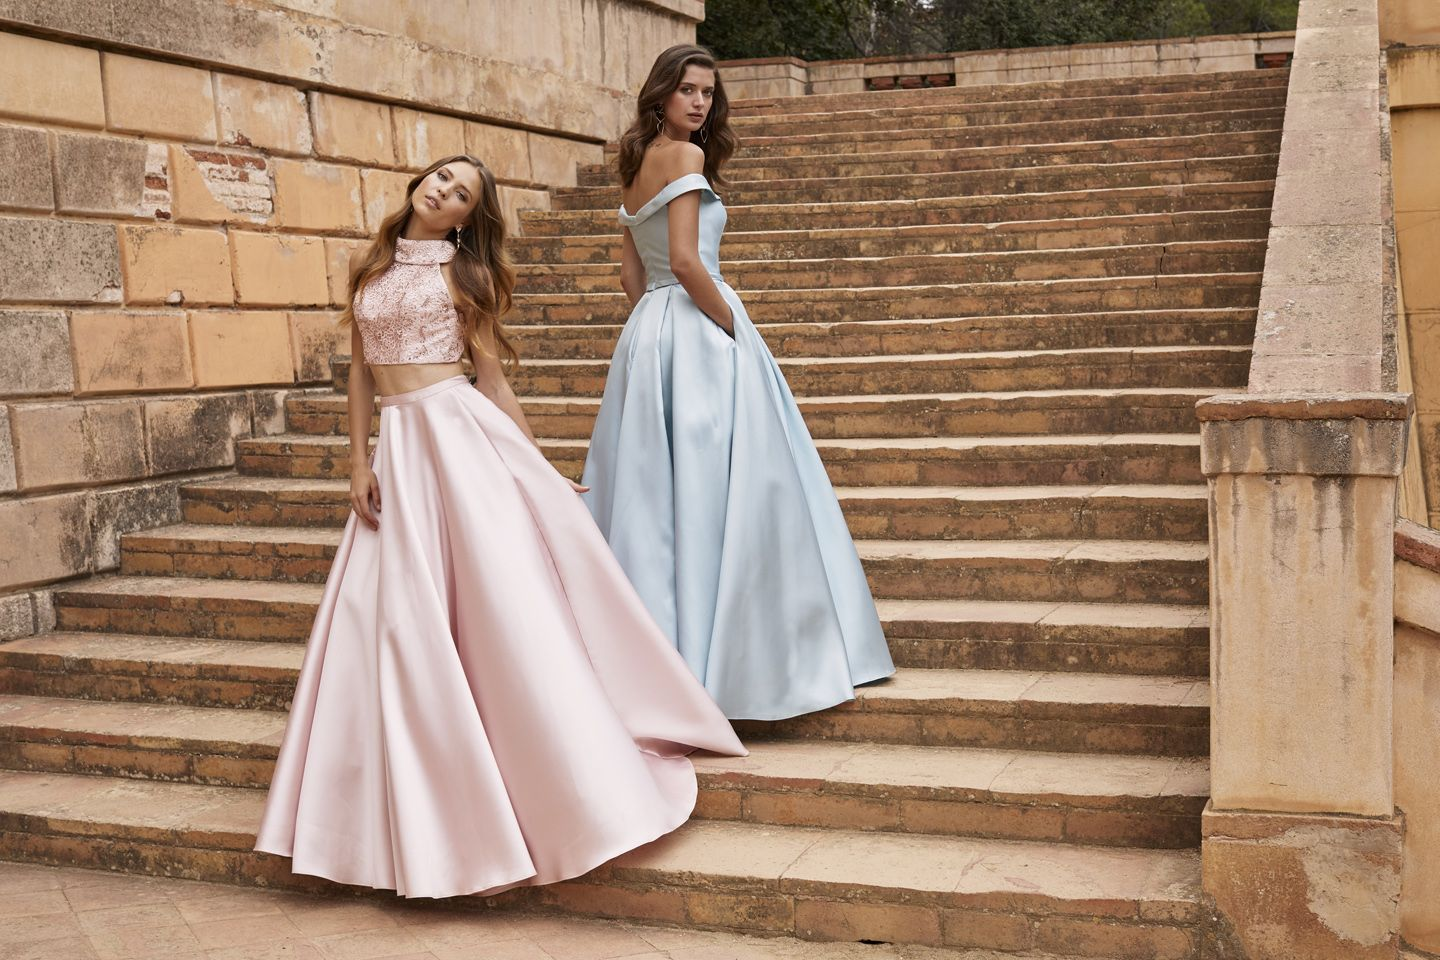 Perfect prom2k18 dresses! Pink: Two piece ball gown with pockets and ...